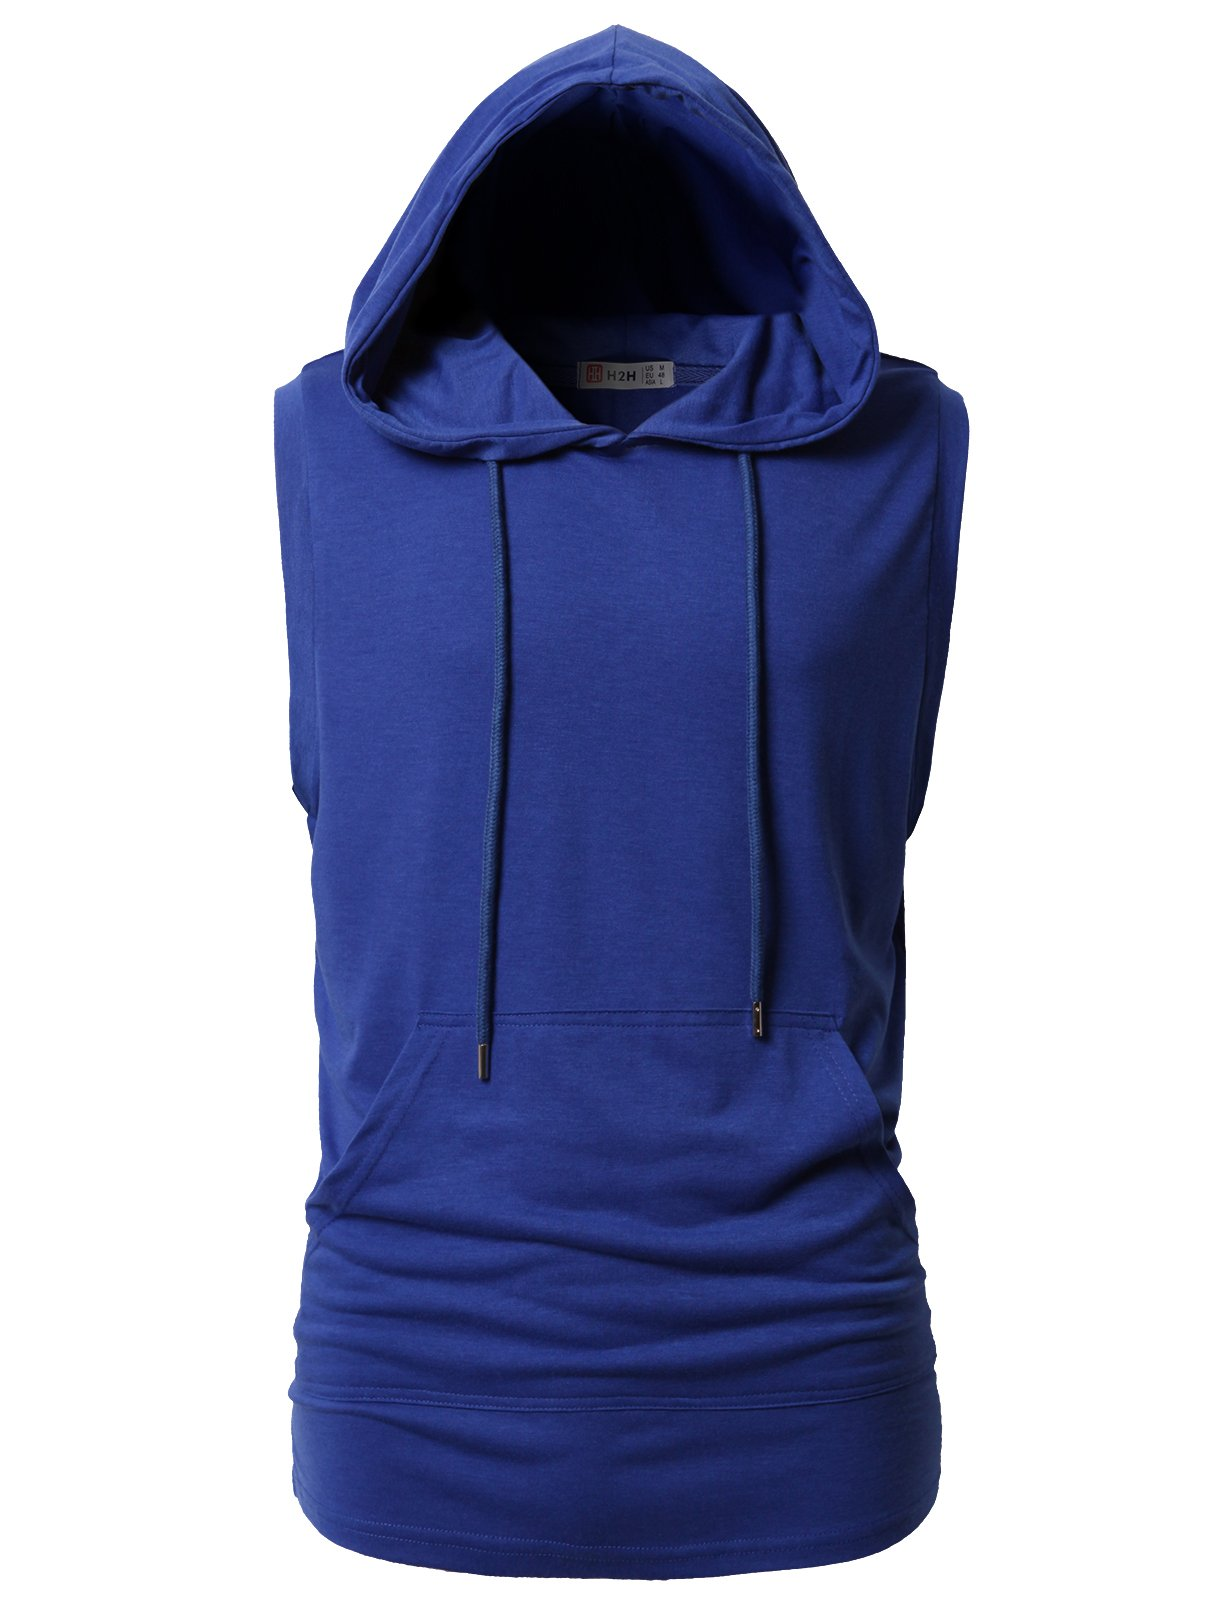 H2H Mens Easy to Wear for Exercise Sleeveless Tank-Top with Side Plackets Blue US M/Asia L (CMTTK028)